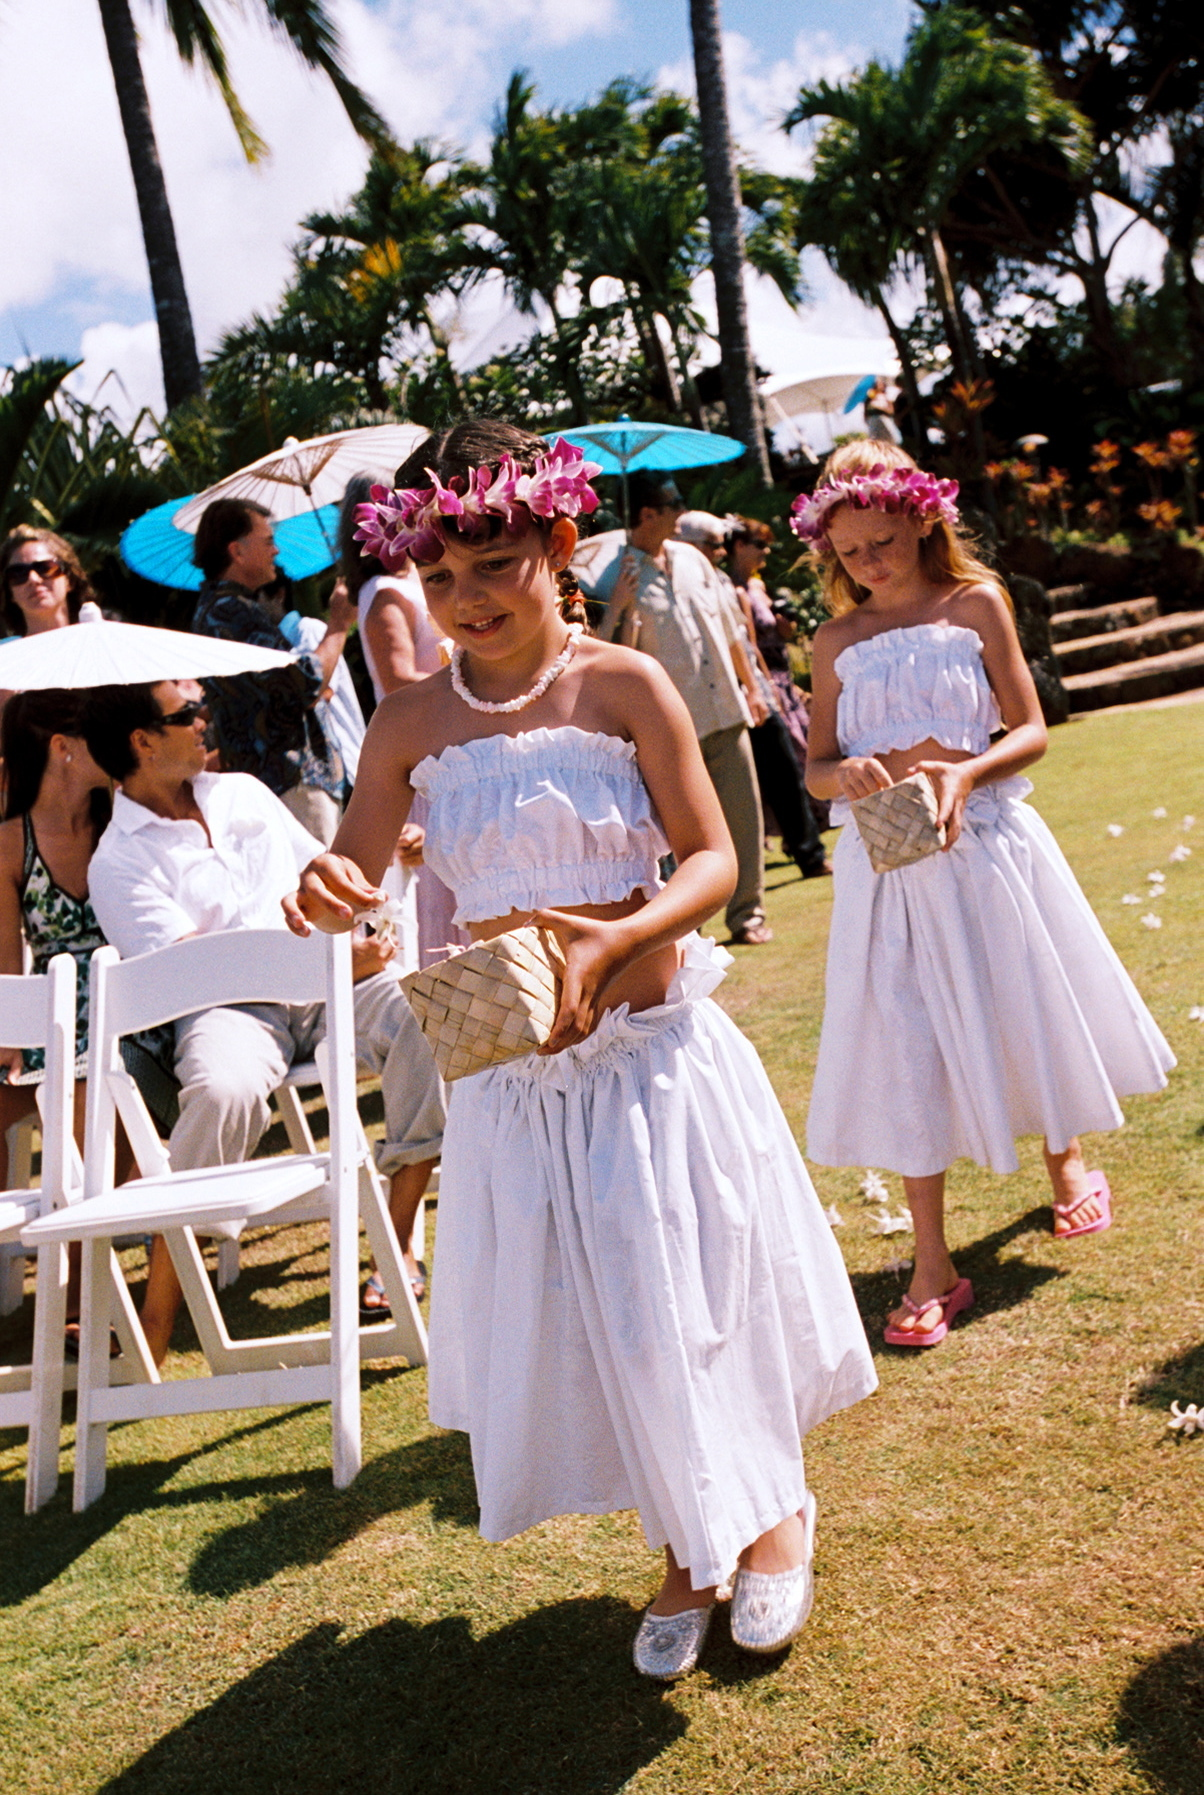 Ceremony, Flowers & Decor, Flower Girls, Destinations, orange, blue, Destination Weddings, Hawaii, Beach, Beach Wedding Flowers & Decor, Wedding, Colorful, Destination wedding, Hawaiian wedding, Kuaui